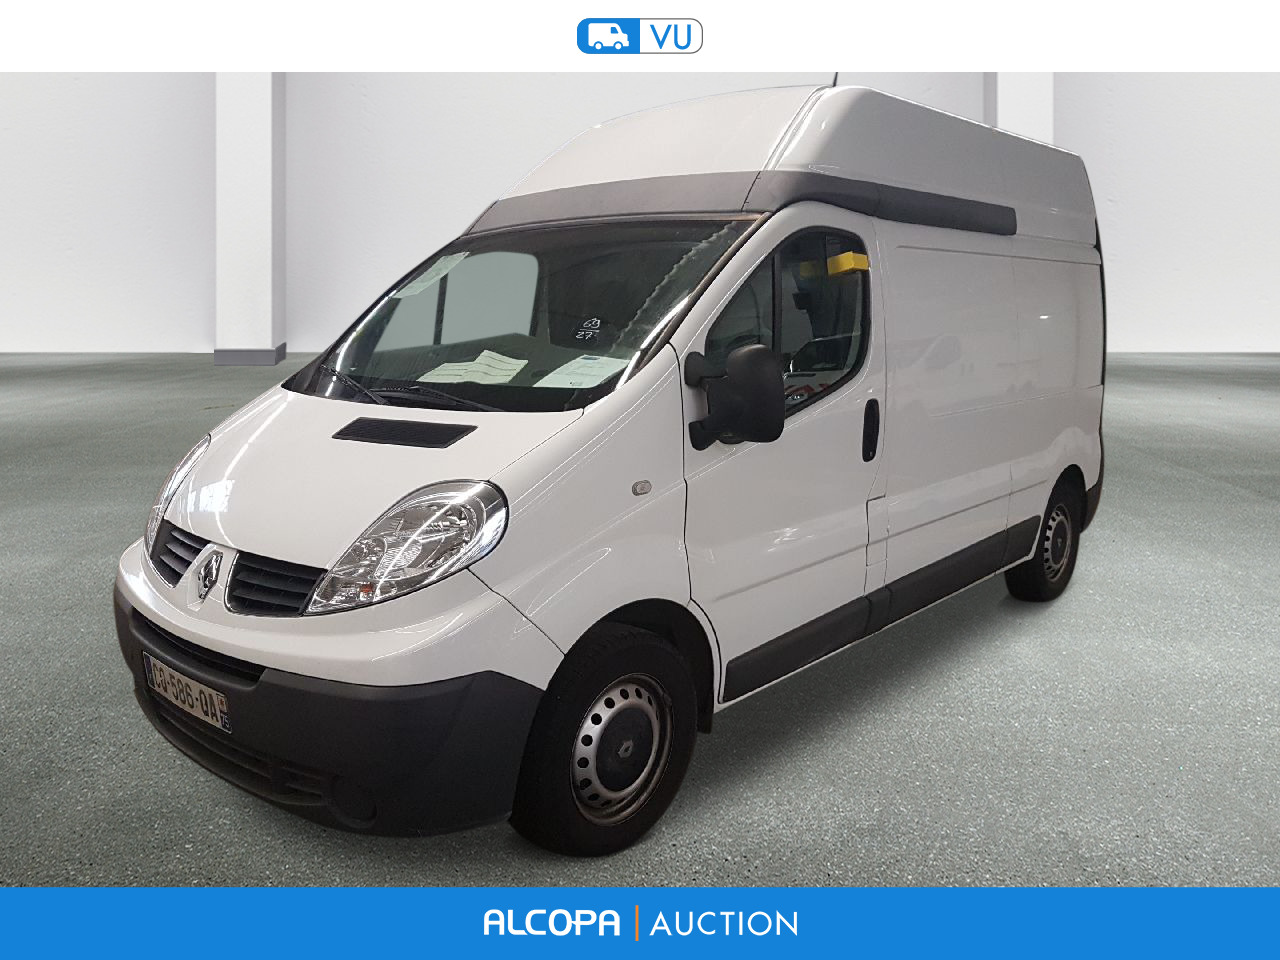 renault trafic trafic fg l2h2 1200kg dci 90 confort beauvais alcopa auction. Black Bedroom Furniture Sets. Home Design Ideas